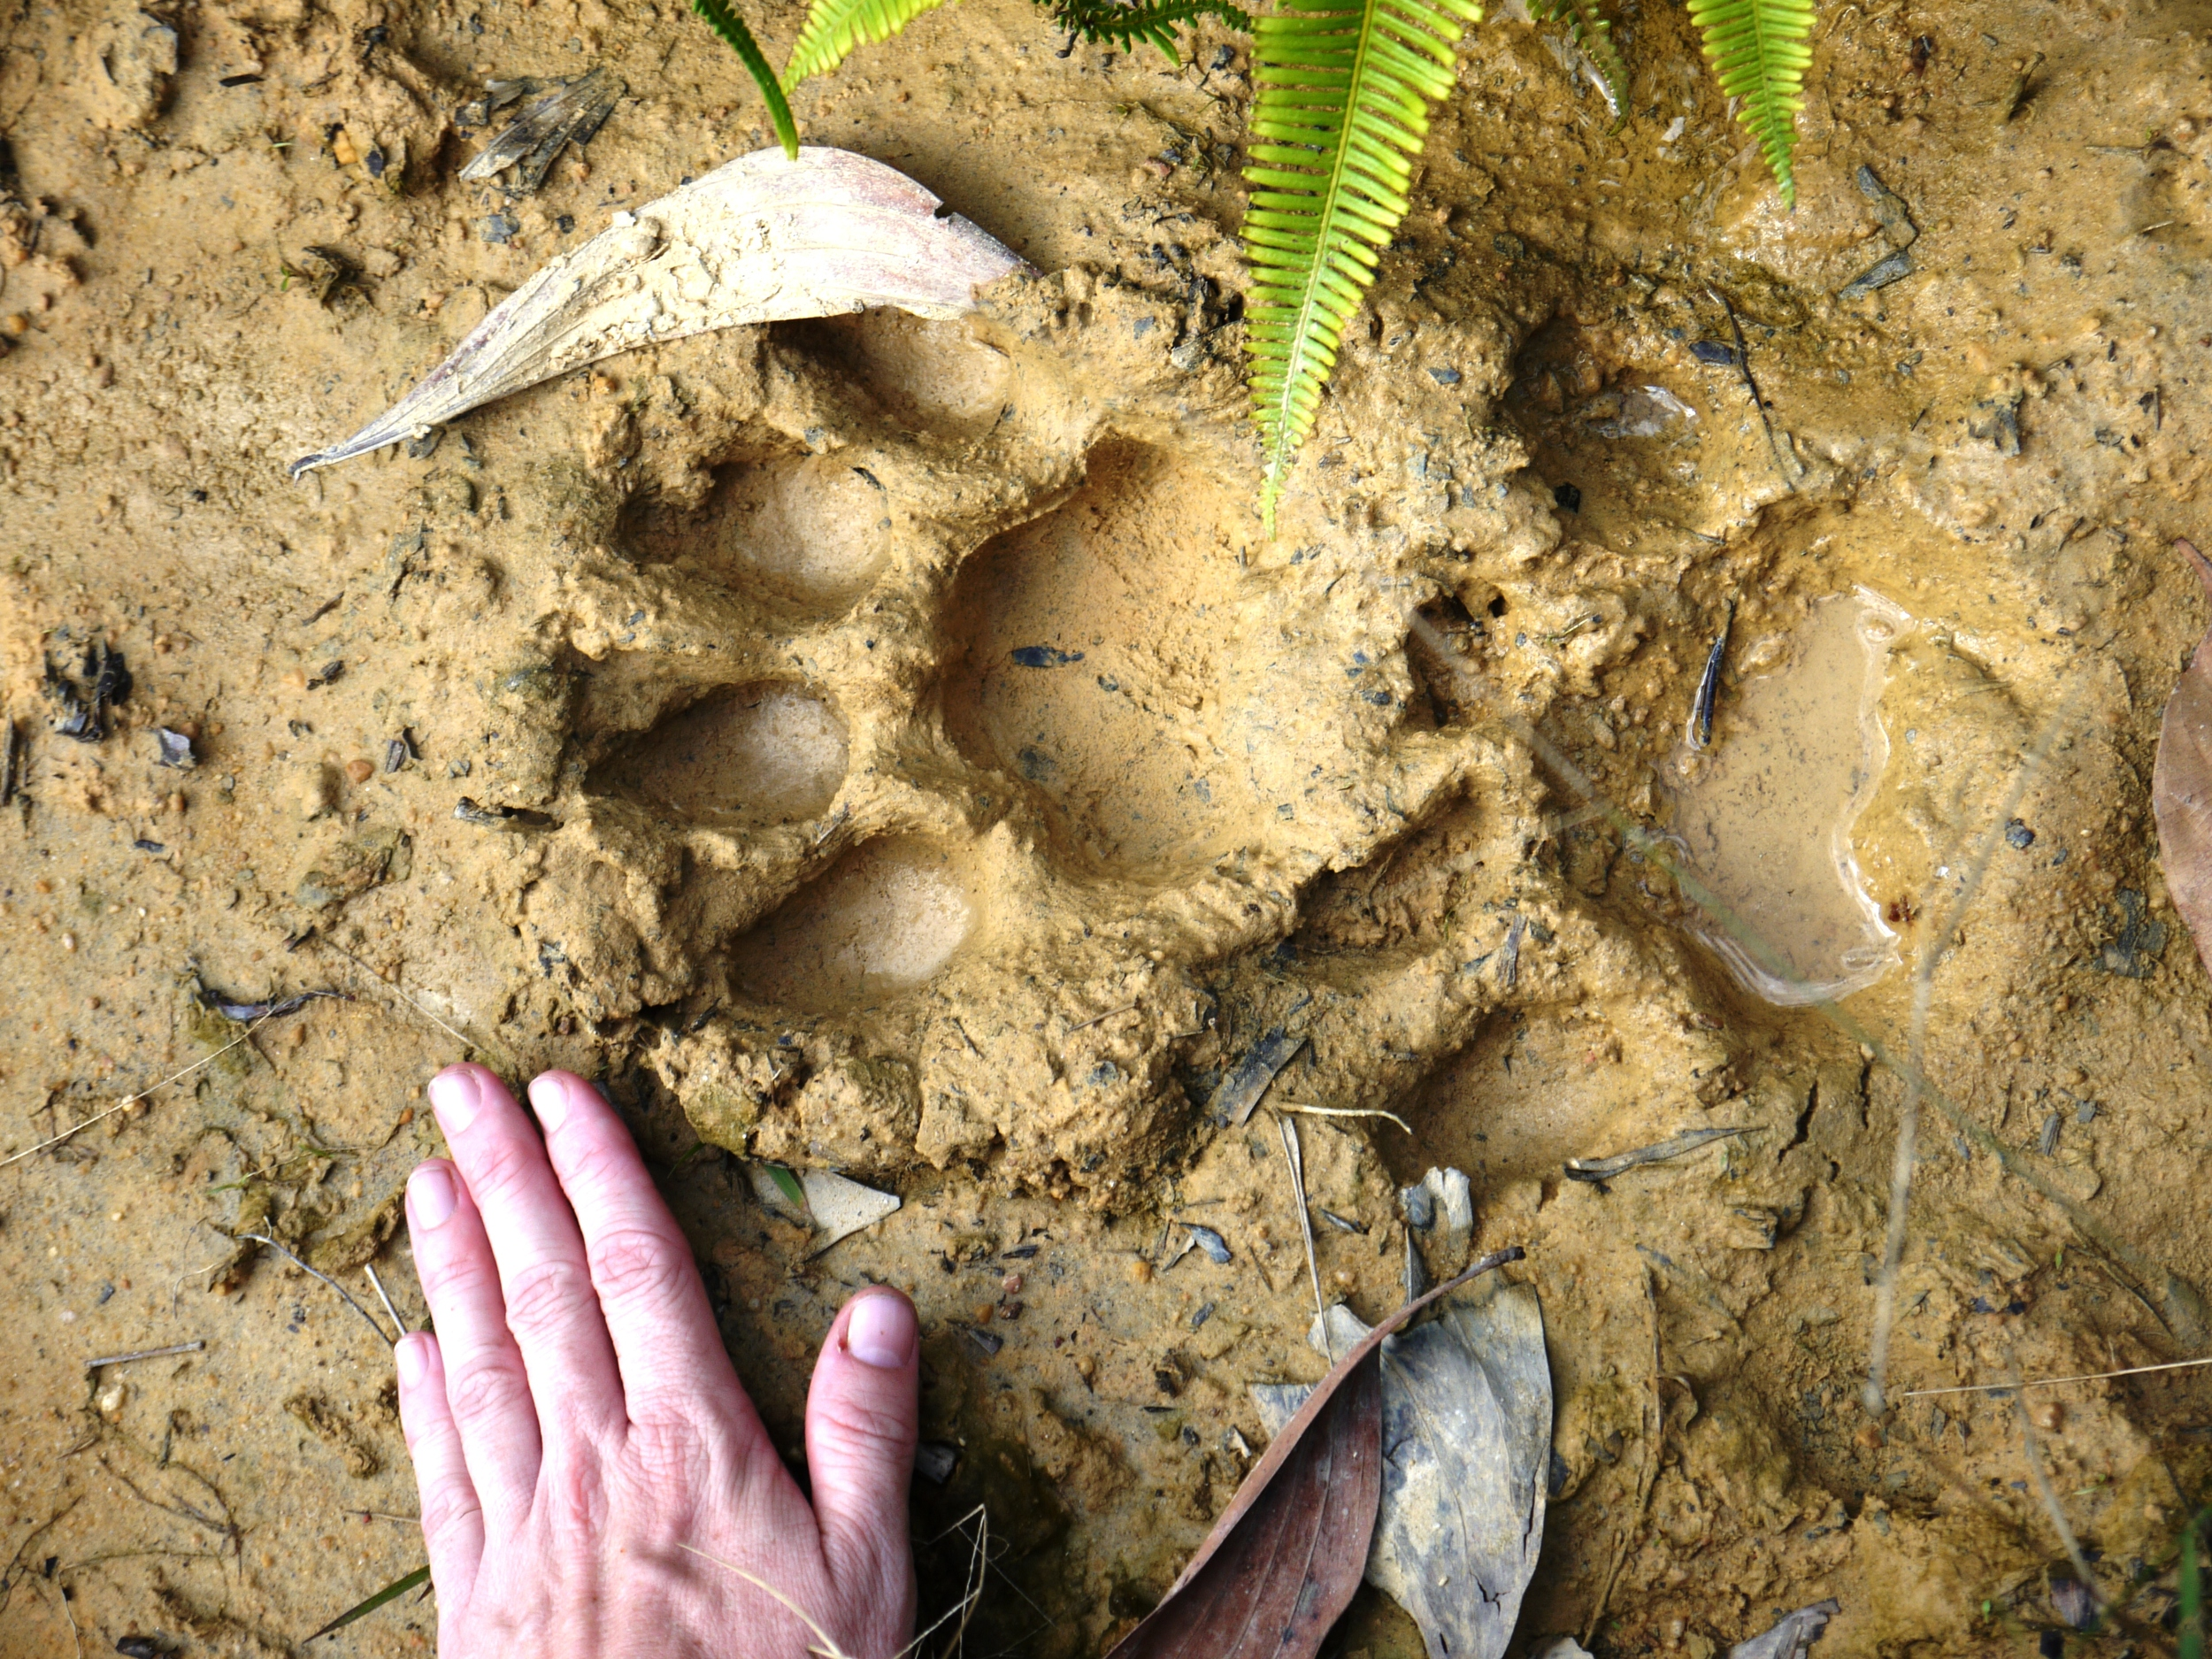 Still valuable...  tiger footprint in a regenerating forest in Sumatra (photo by William Laurance).